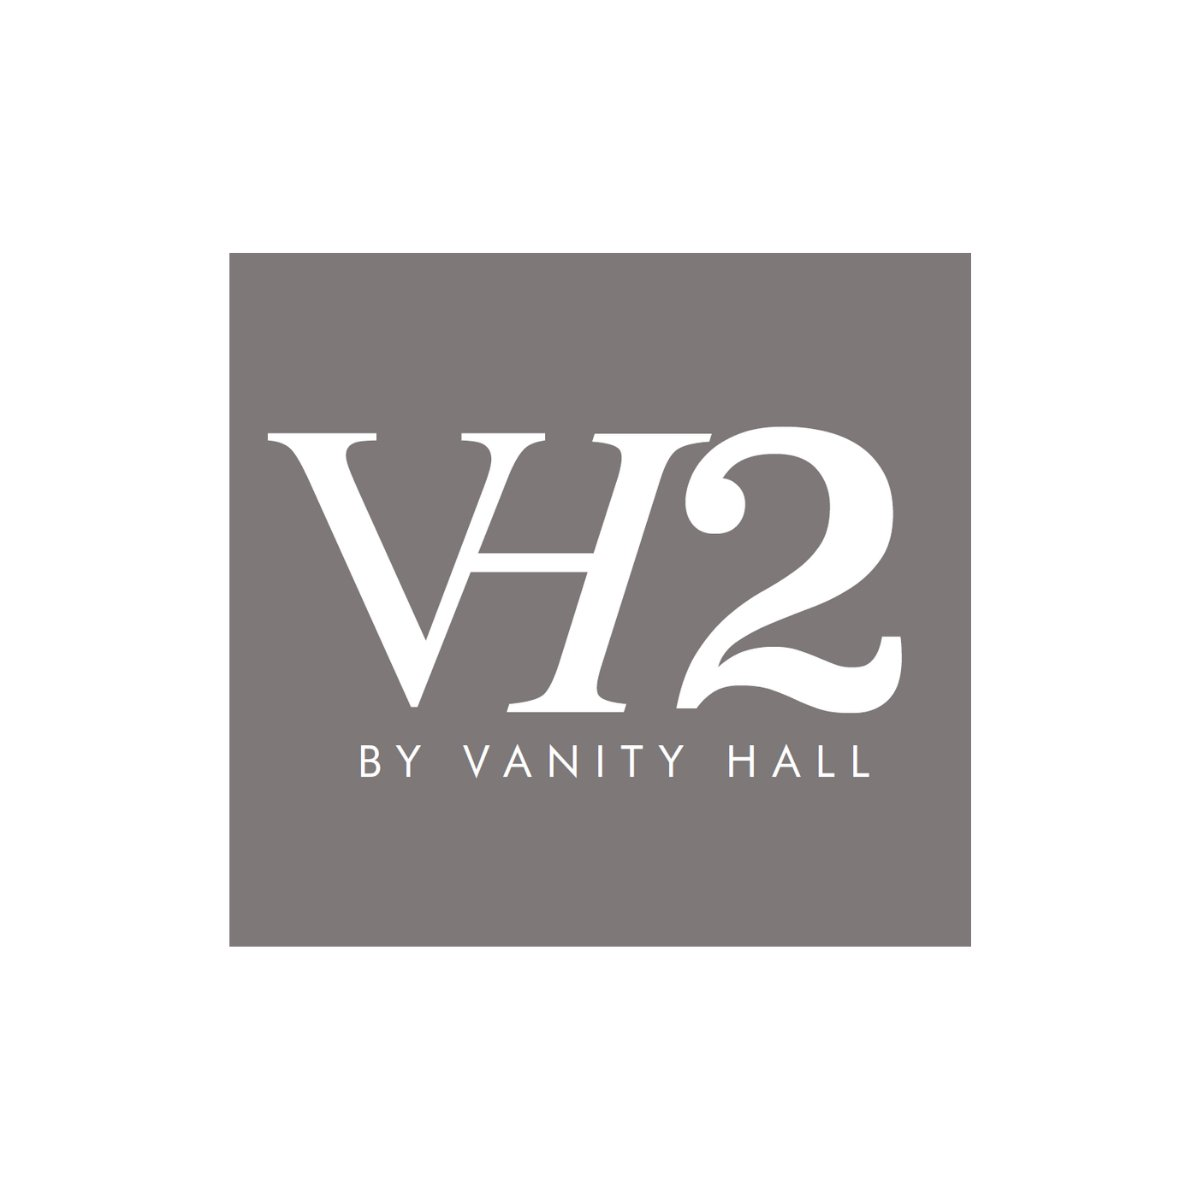 The VH2 Vanity Hall catalogues are now fully priced on Virtual Worlds #OnePrice #PricebyDesign #VW4D